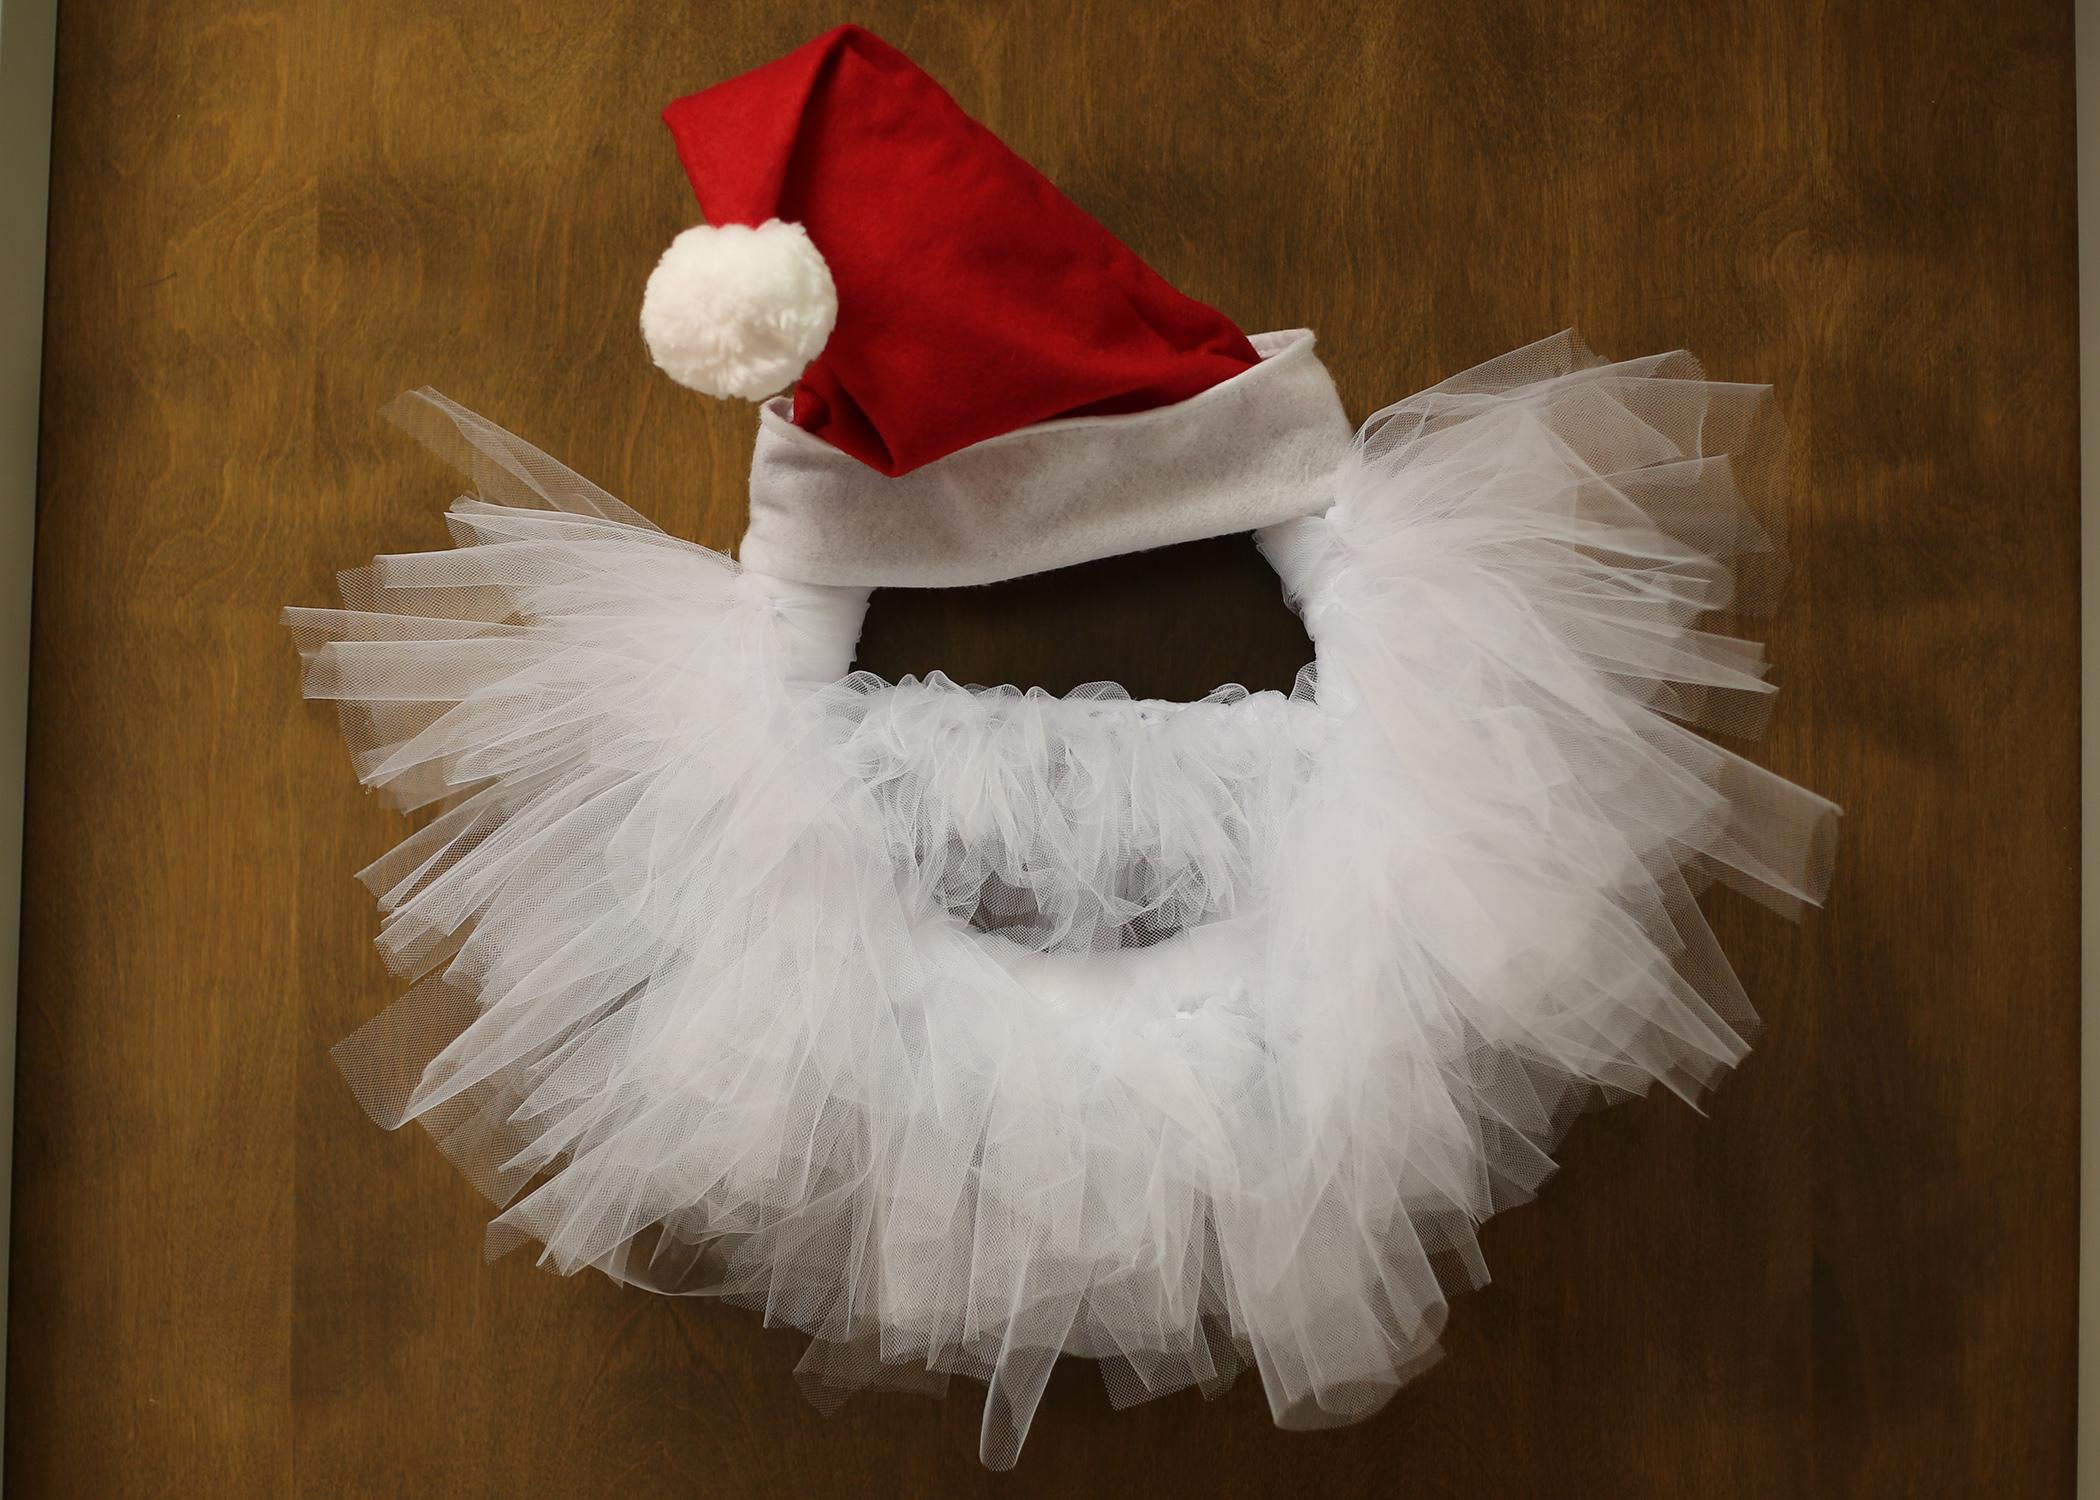 Wreath with Santa hat and white tulle shaped to look like a beard hanging on a wooden door.